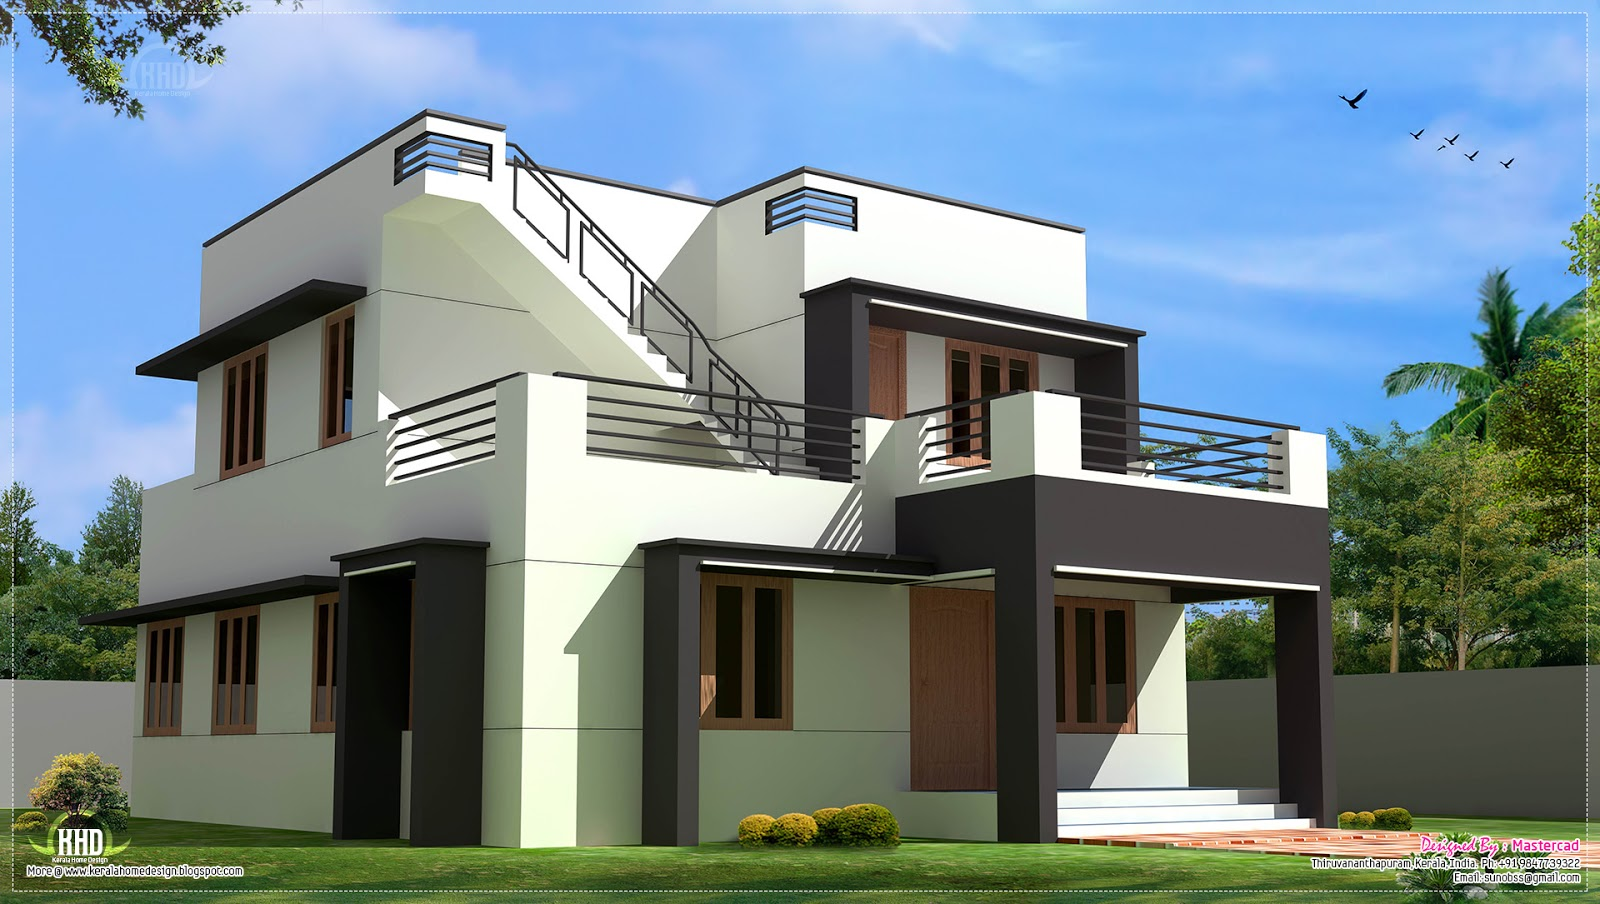 Modern house design in 1700 kerala home design for Contemporary house plans 2015